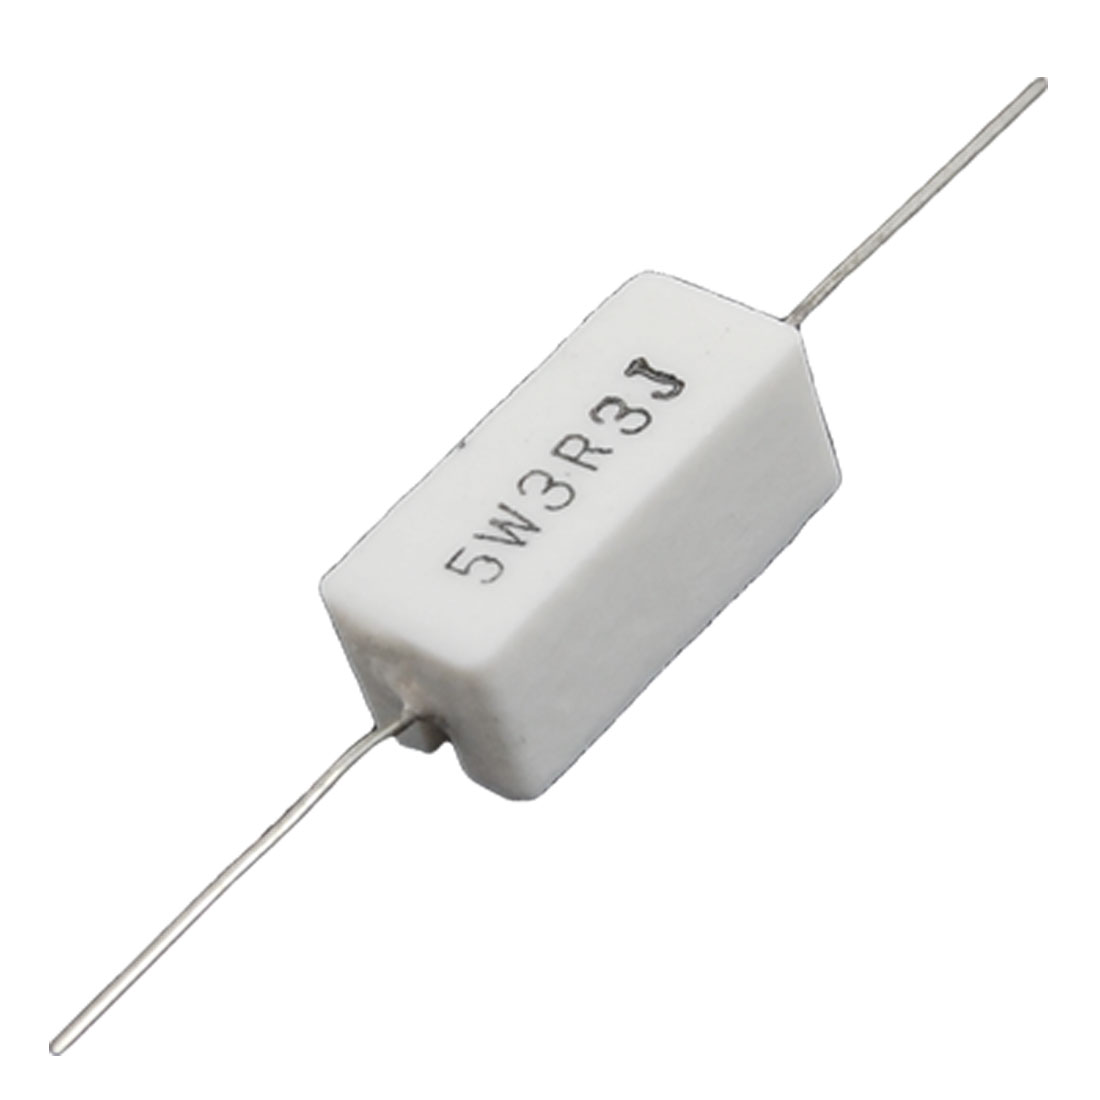 3R3 3.3 Ohm 5% 5W Axial Lead Ceramic Cement Resistor 10 Pcs